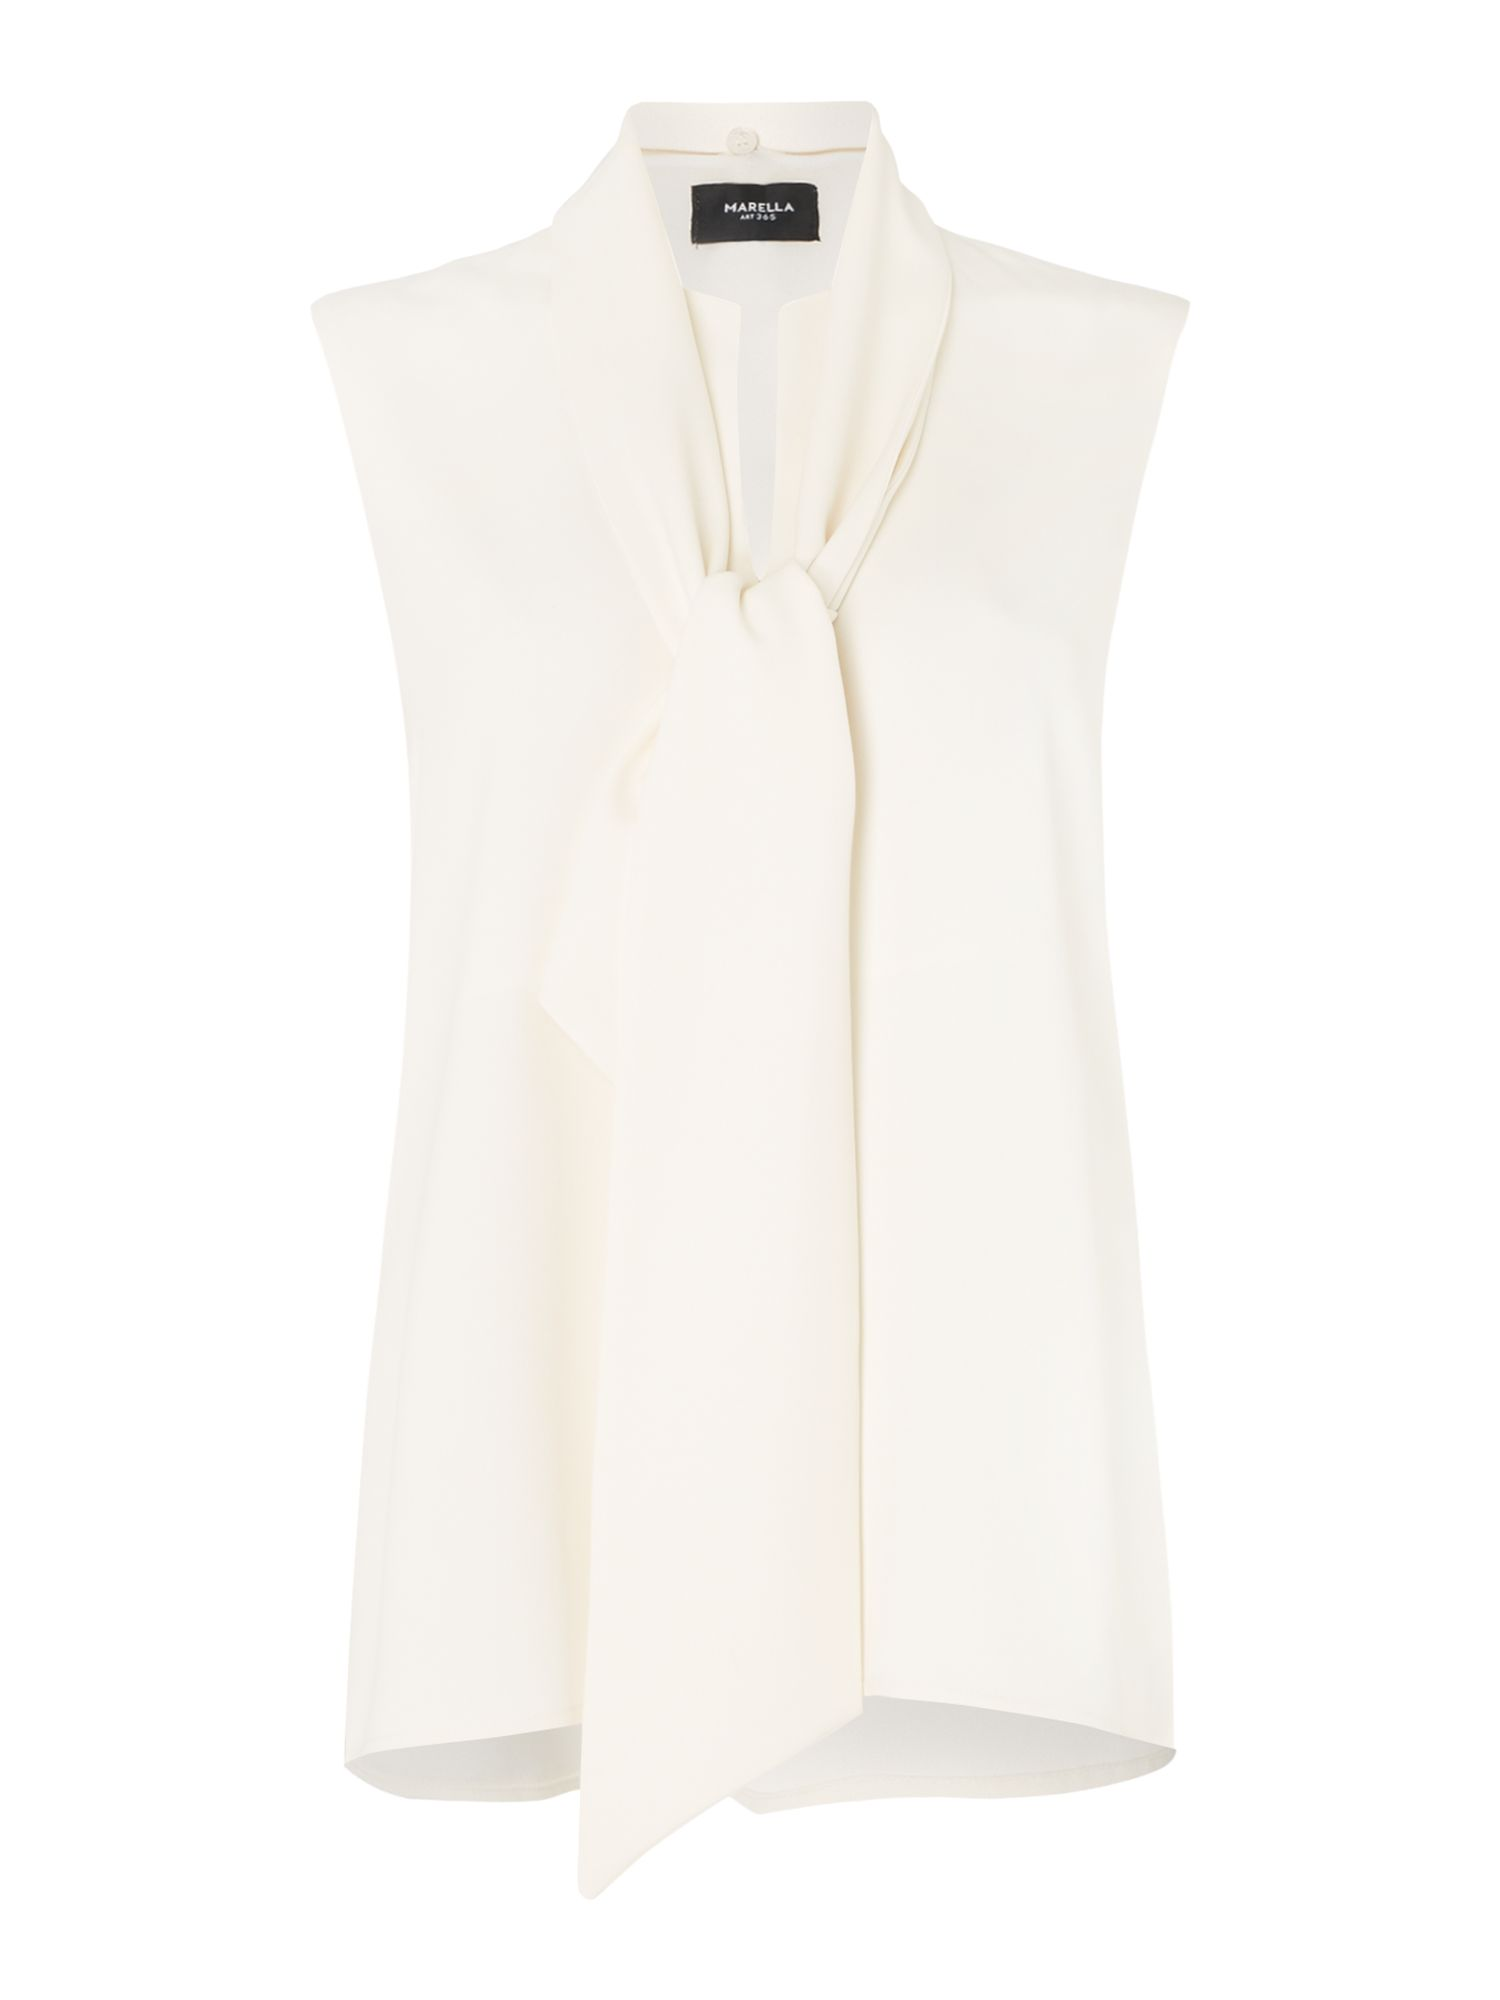 Marella Snodo tie neck sleeveless top, White